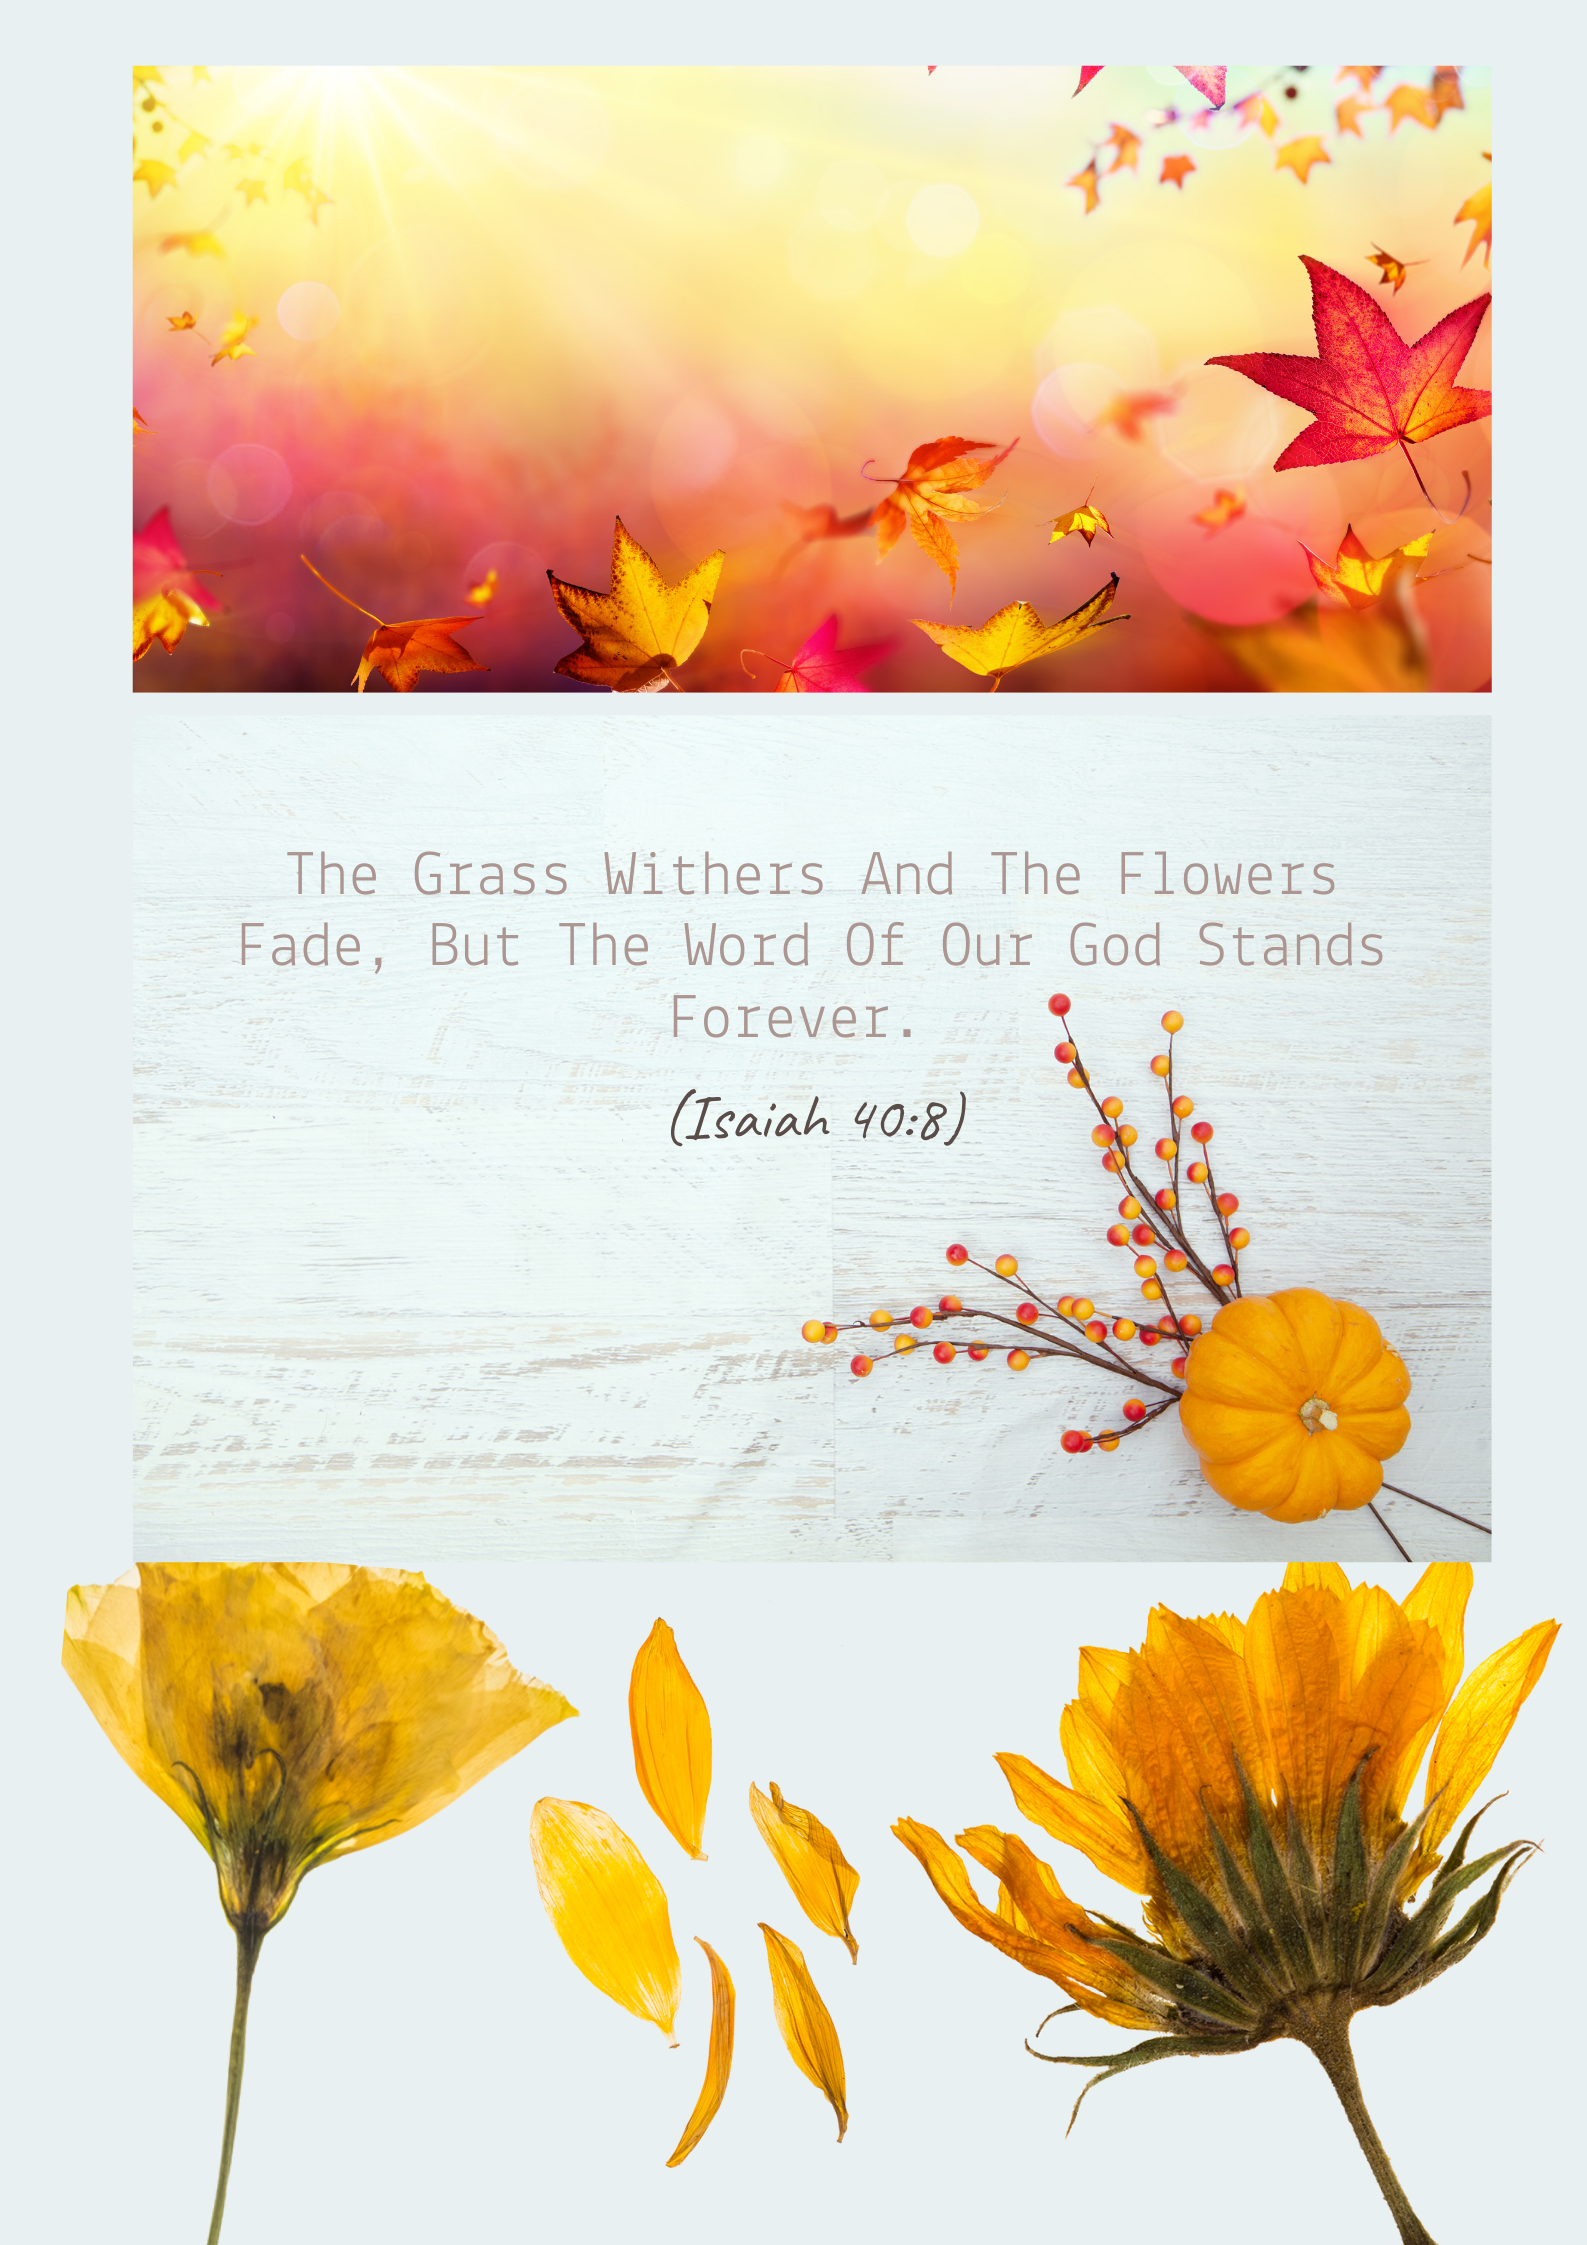 The grass withers the flowers